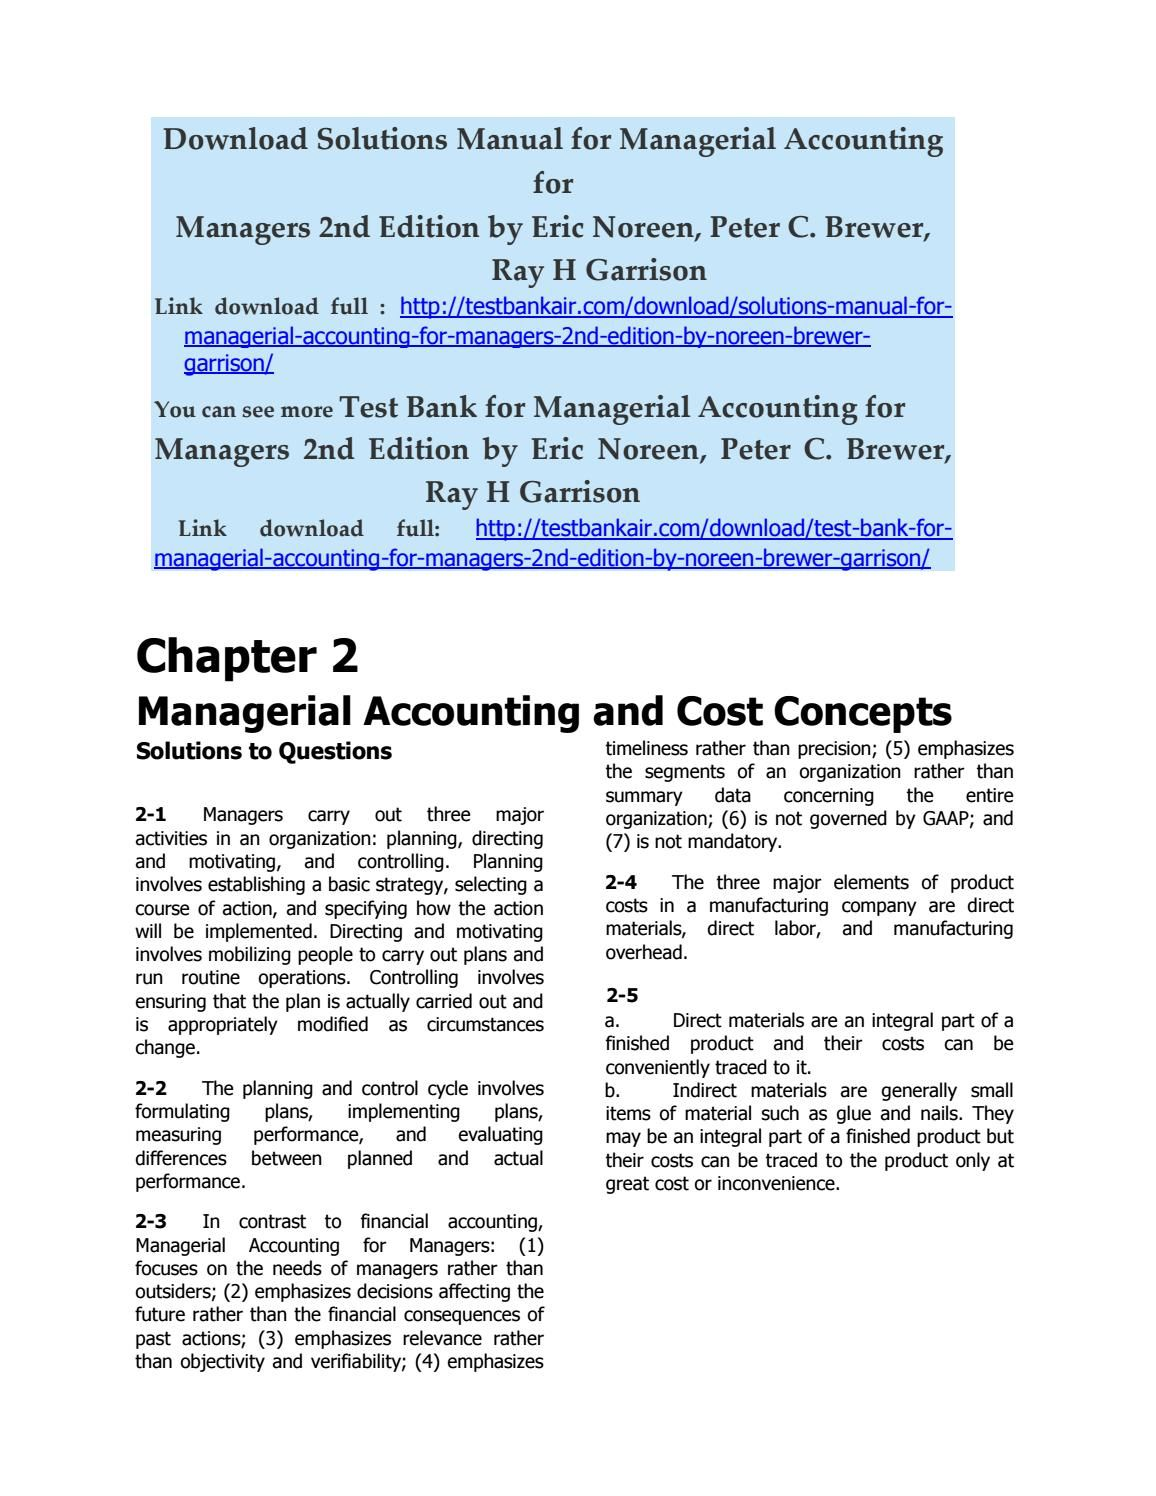 Solutions Manual for Managerial Accounting for Managers 2nd Edition by  Noreen Brewer Garrison